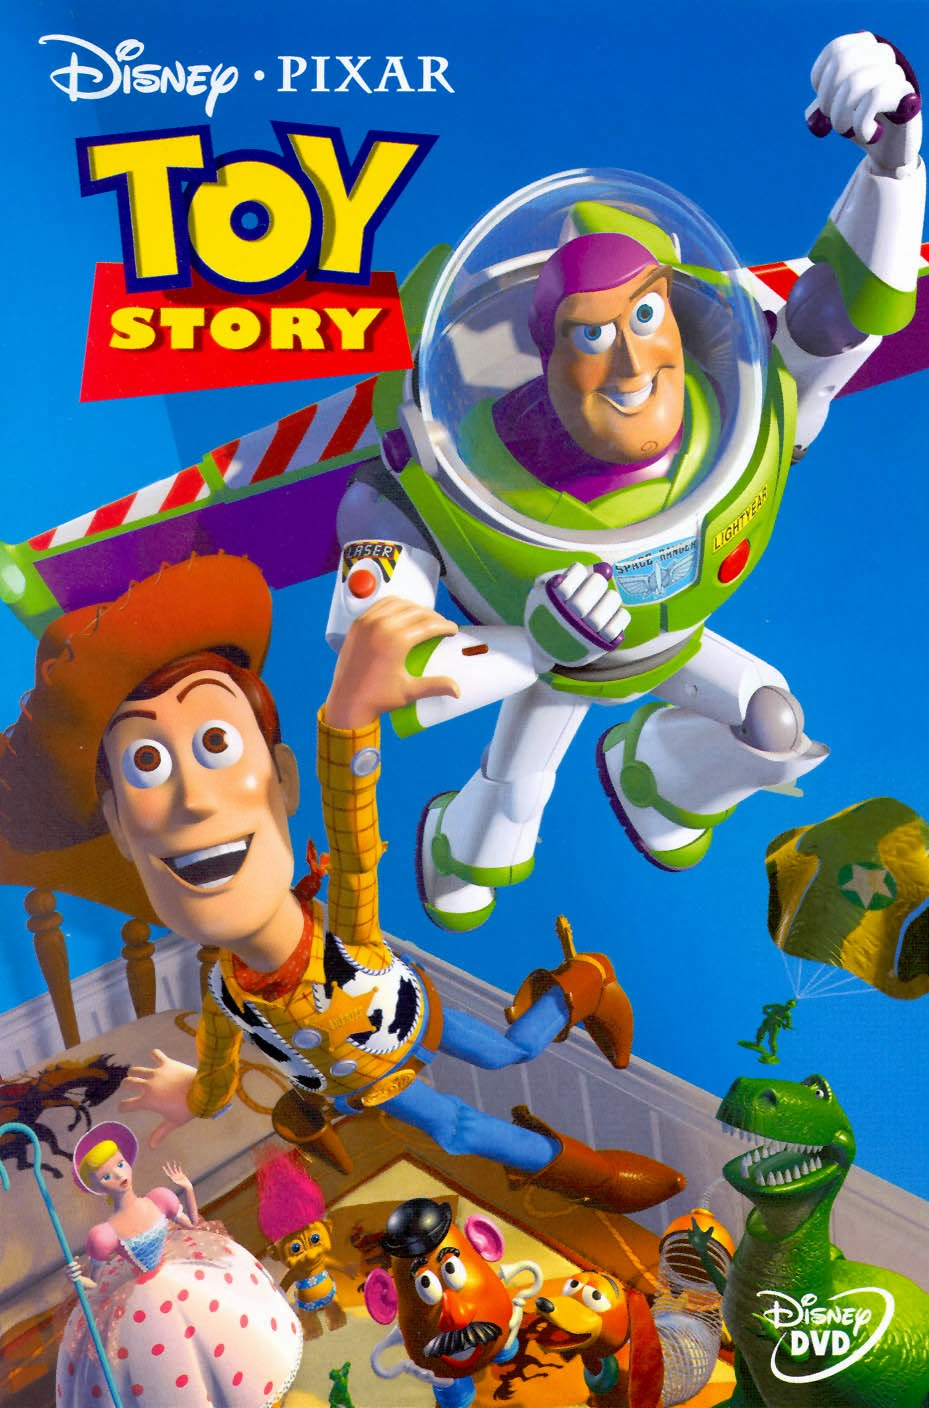 Toy Story Cracked Magazine: Toy Story Putlocker - Watch Movies Online For Free